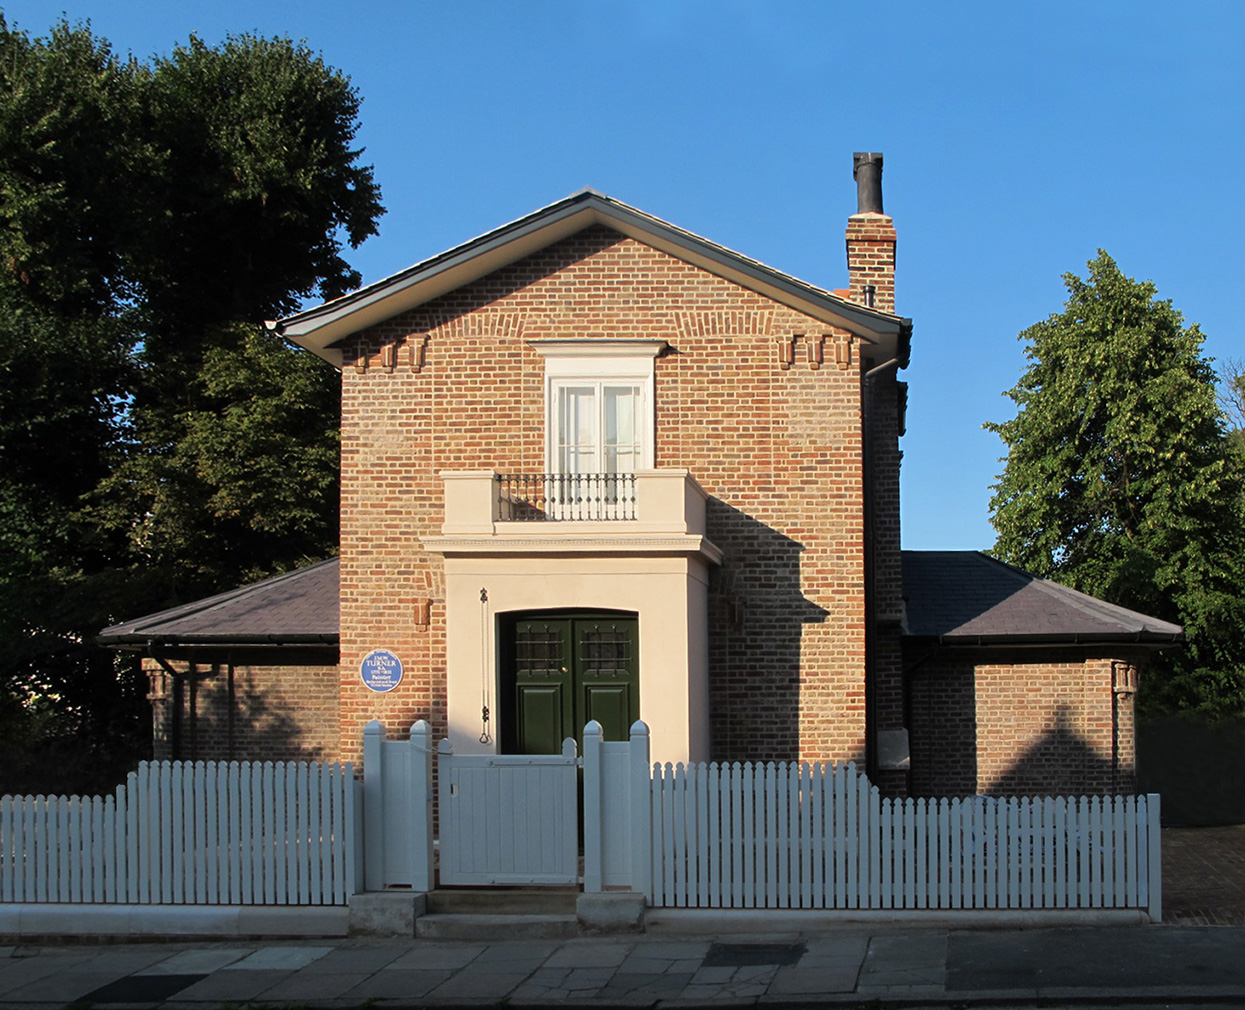 JMW Turner's former home, Sandycombe Lodge in London